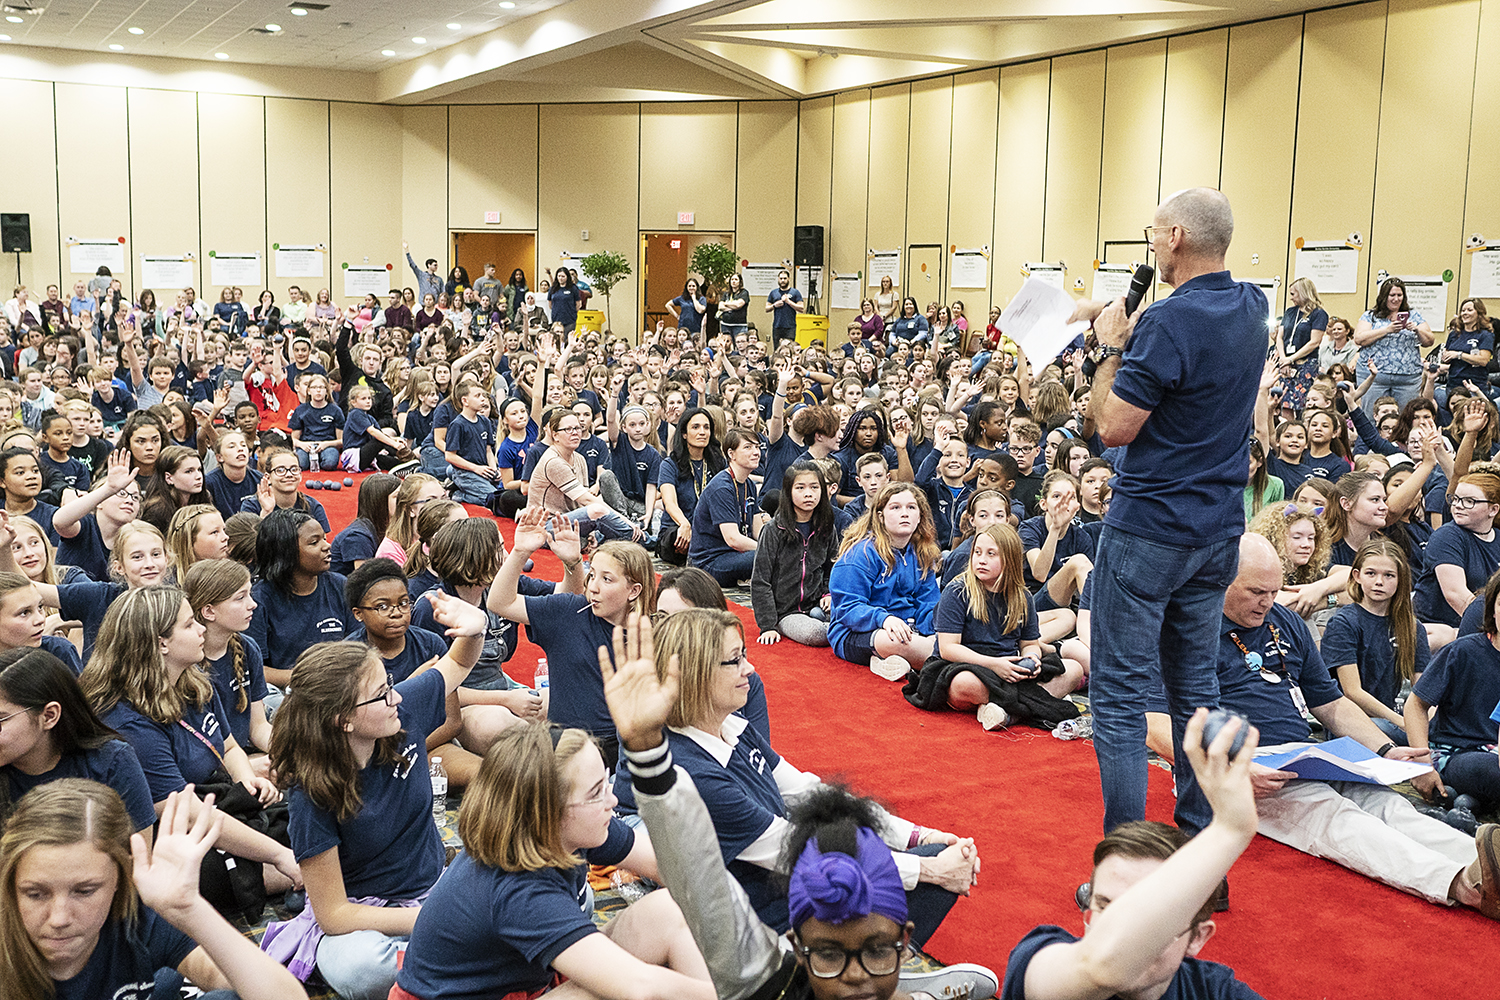 Flint, MI - Friday, May 4, 2018: Blueberry Founder and Fenton Twp. resident Phil Shaltz (69) speaks to the Blueberry Ambassadors during the 5th Annual Blueberry Ambassador Awards Party at the Riverfront Banquet Center downtown.Tim Galloway for FlintSide